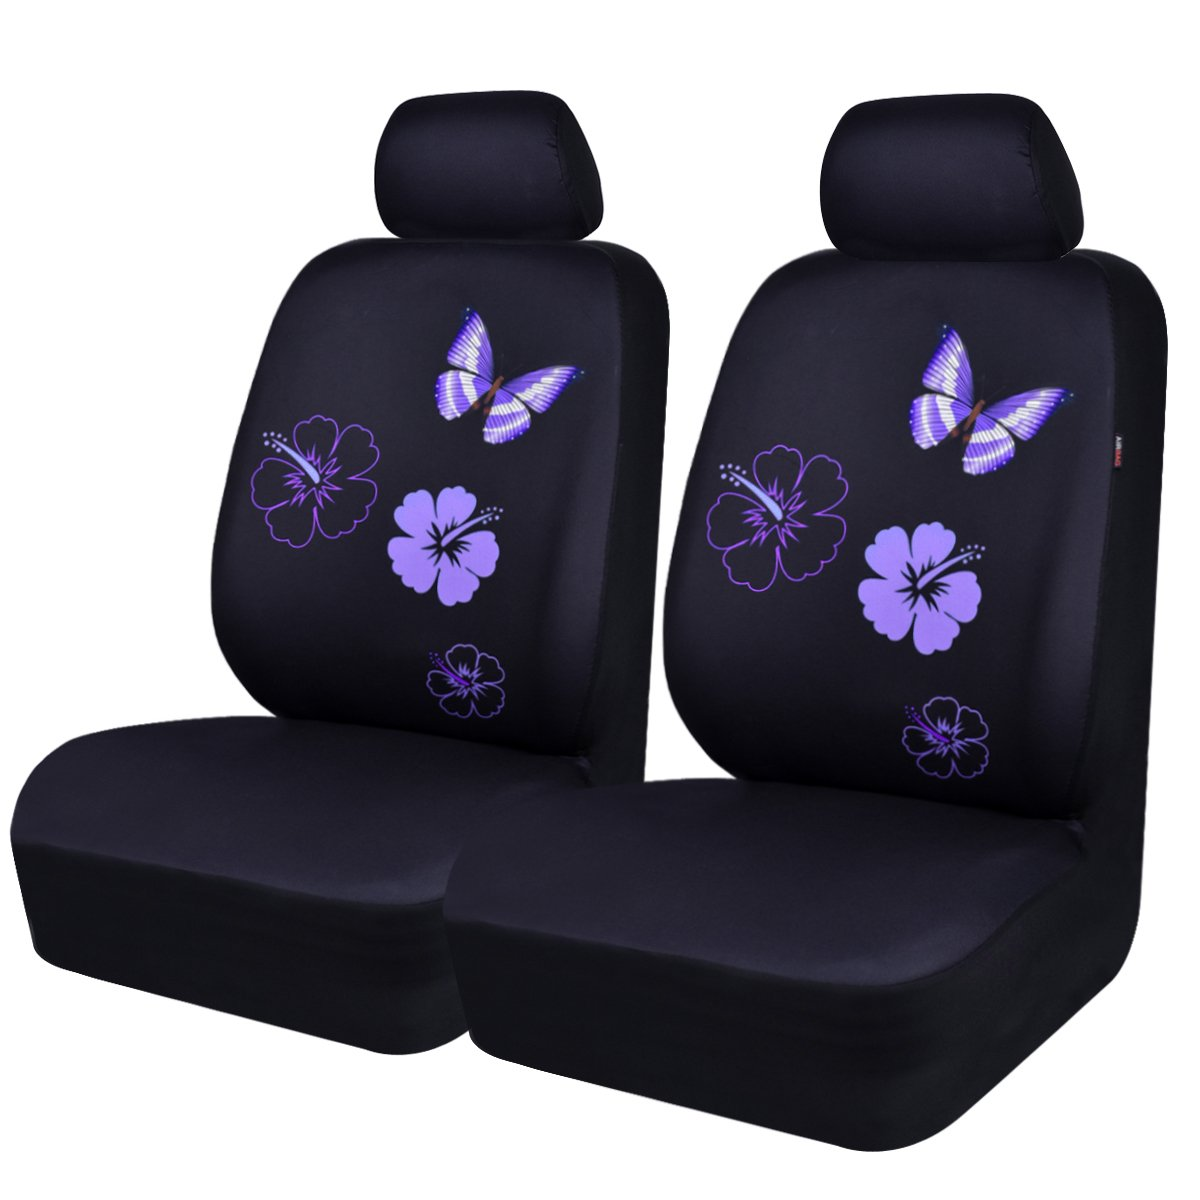 NEW ARRIVAL- CAR PASS Flower And Butterfly Universal Car Seat Covers,Perfect Fit Suvs,sedans,Vehicles,Airbag Compatible (2Front seat covers, Black and Pink color)